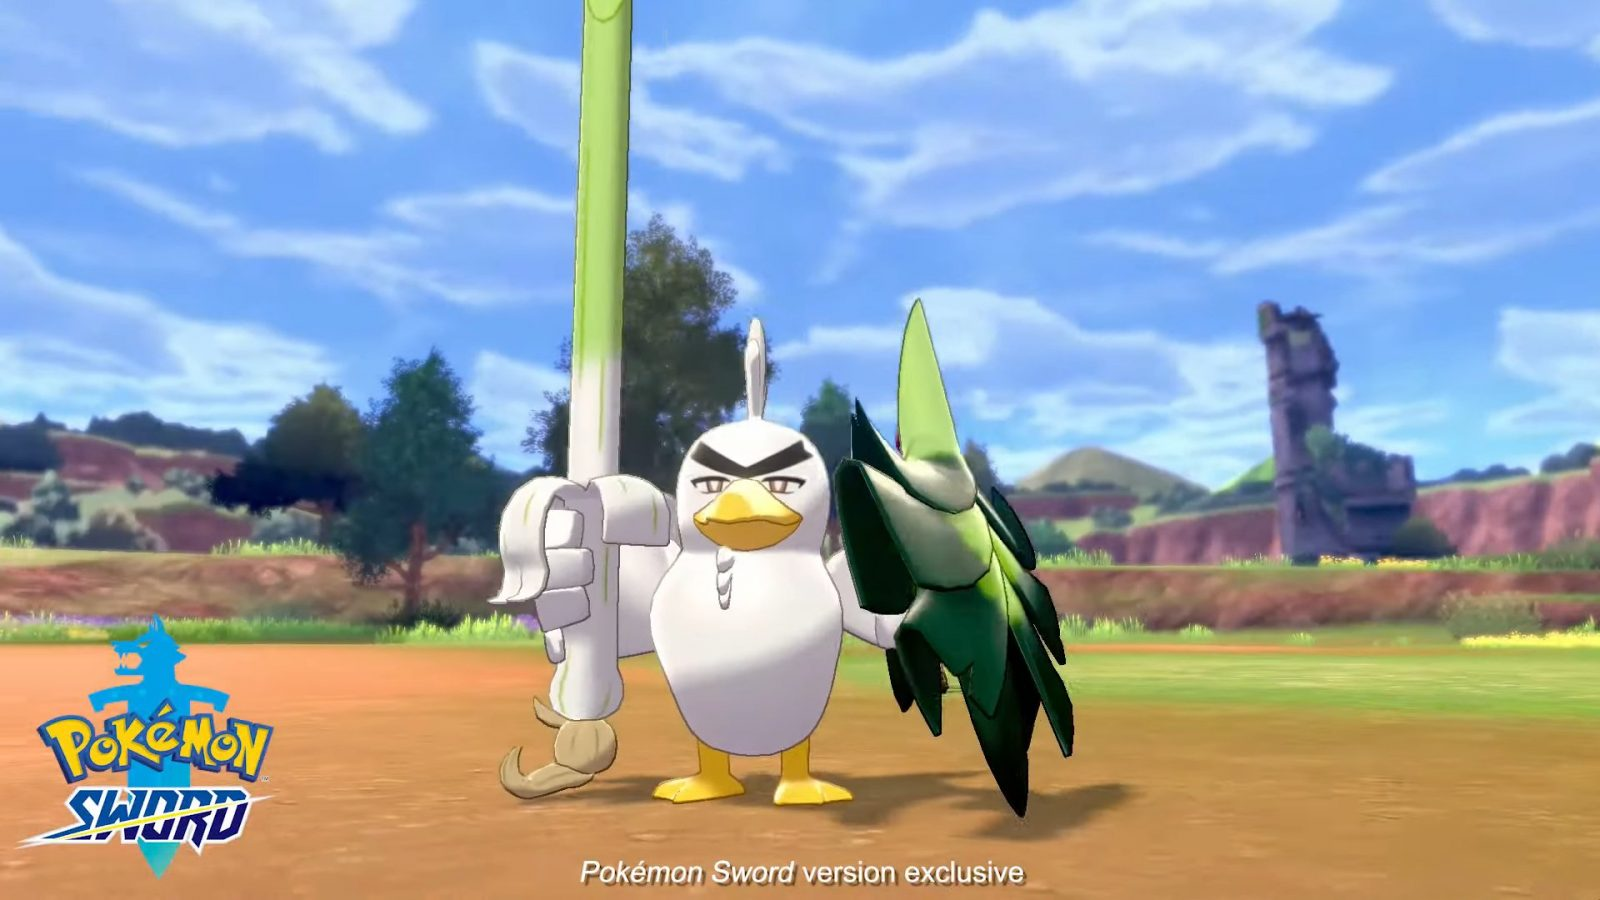 A Wild Sirfetch'd Appears; Exclusive to Pokemon Sword